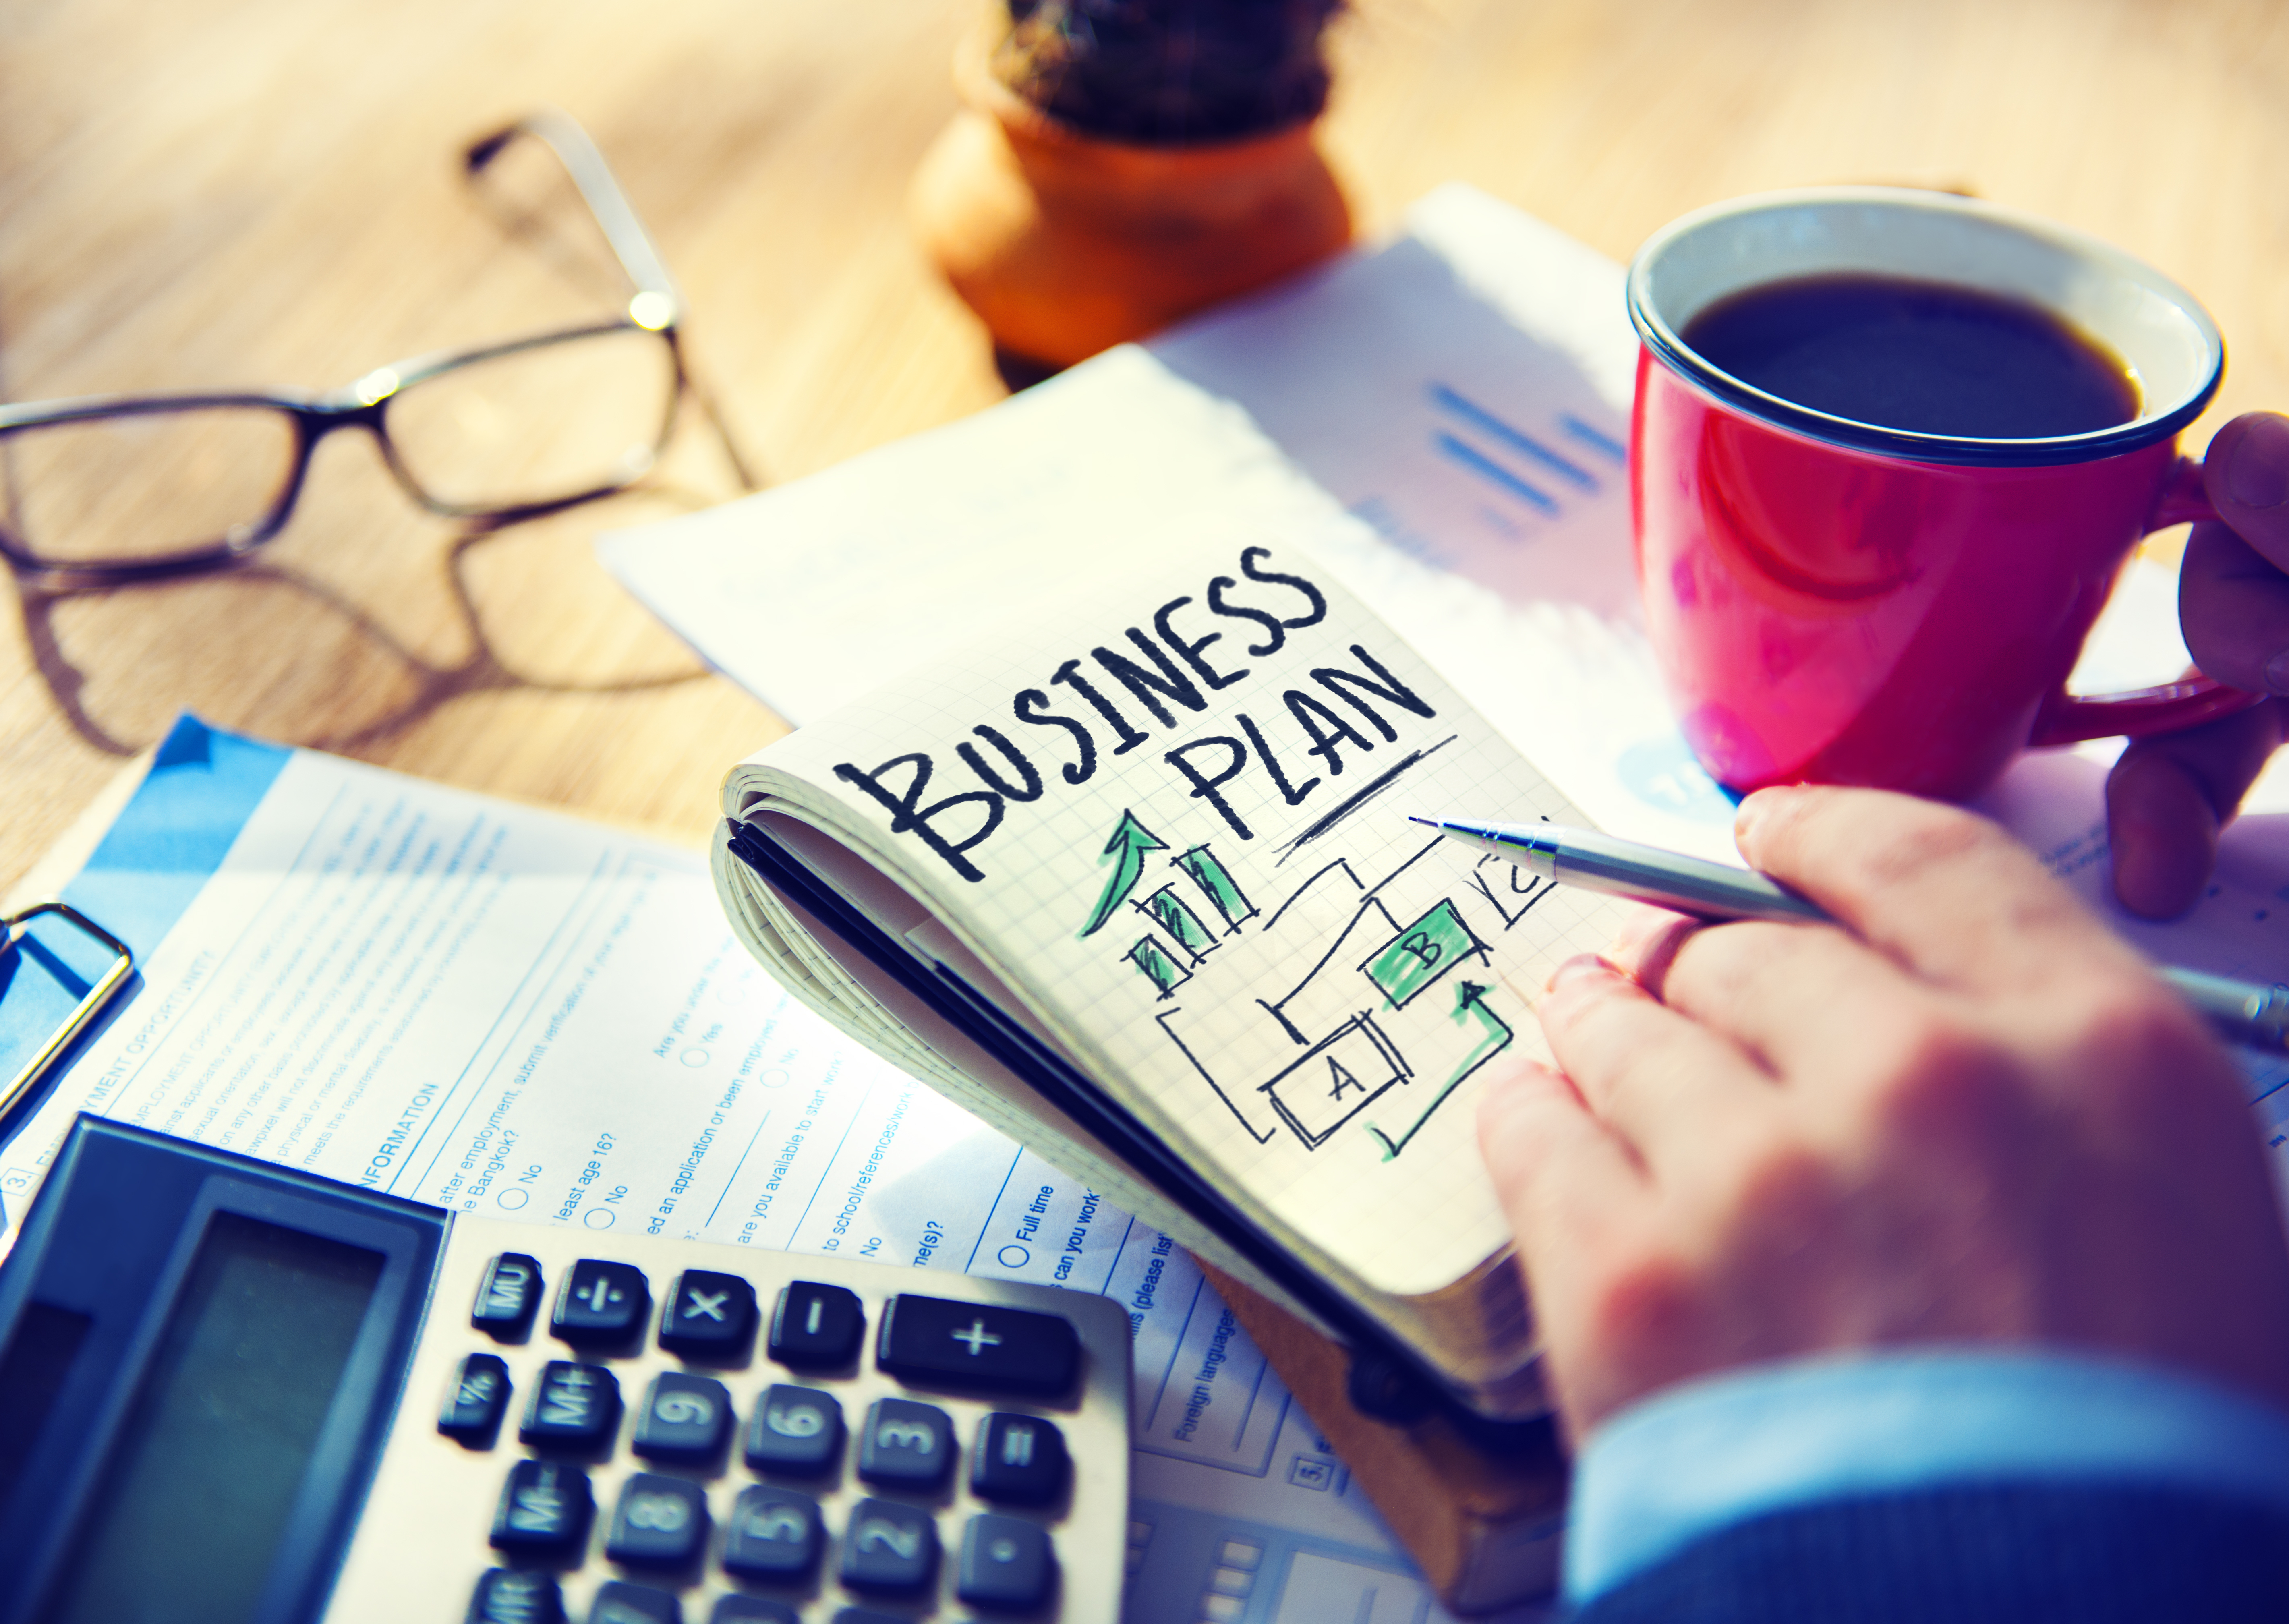 Most companies don't have a written business plan which research show limits their success